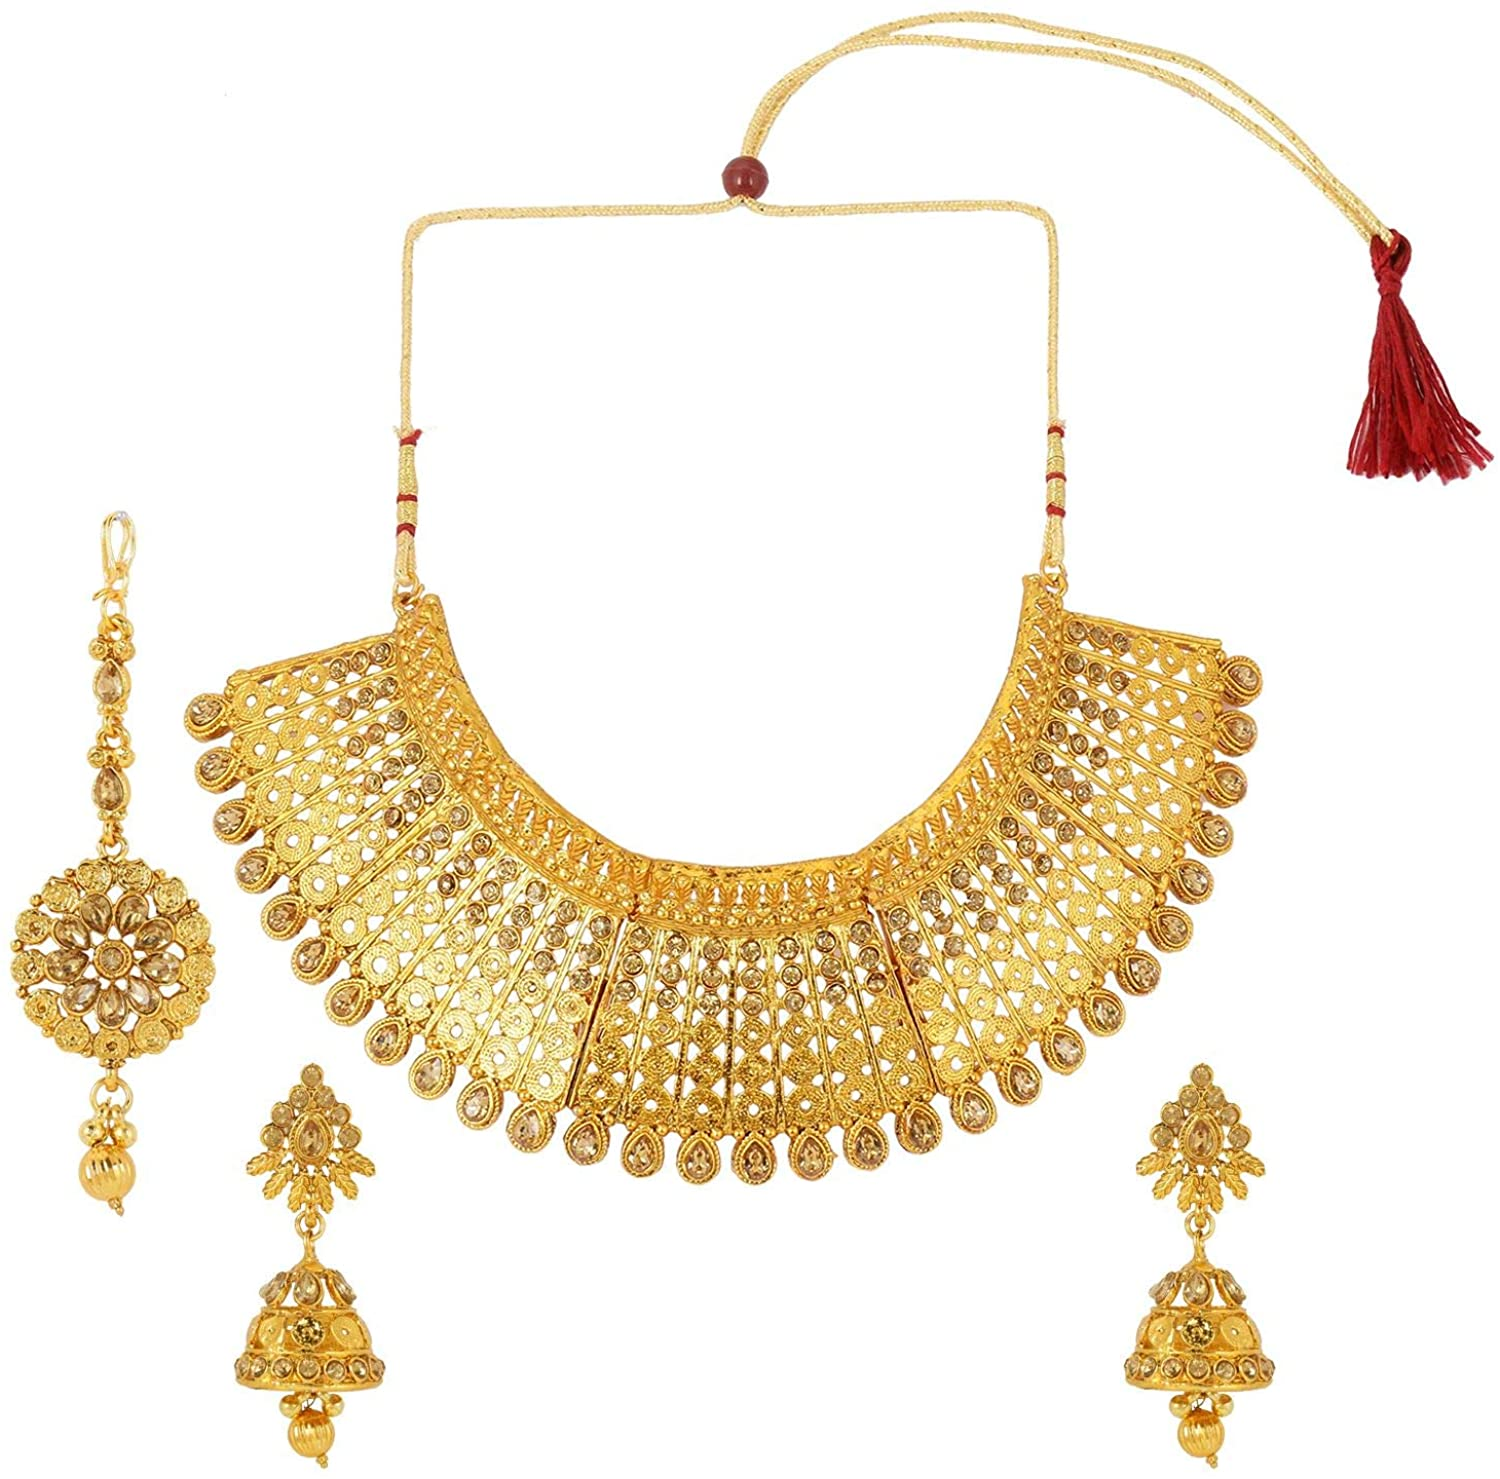 Efulgenz Indian Bollywood Traditional 14 K Gold Plated Crystal Pearl Wedding Temple Choker Necklace Earrings Maang Tikka Jewelry Set